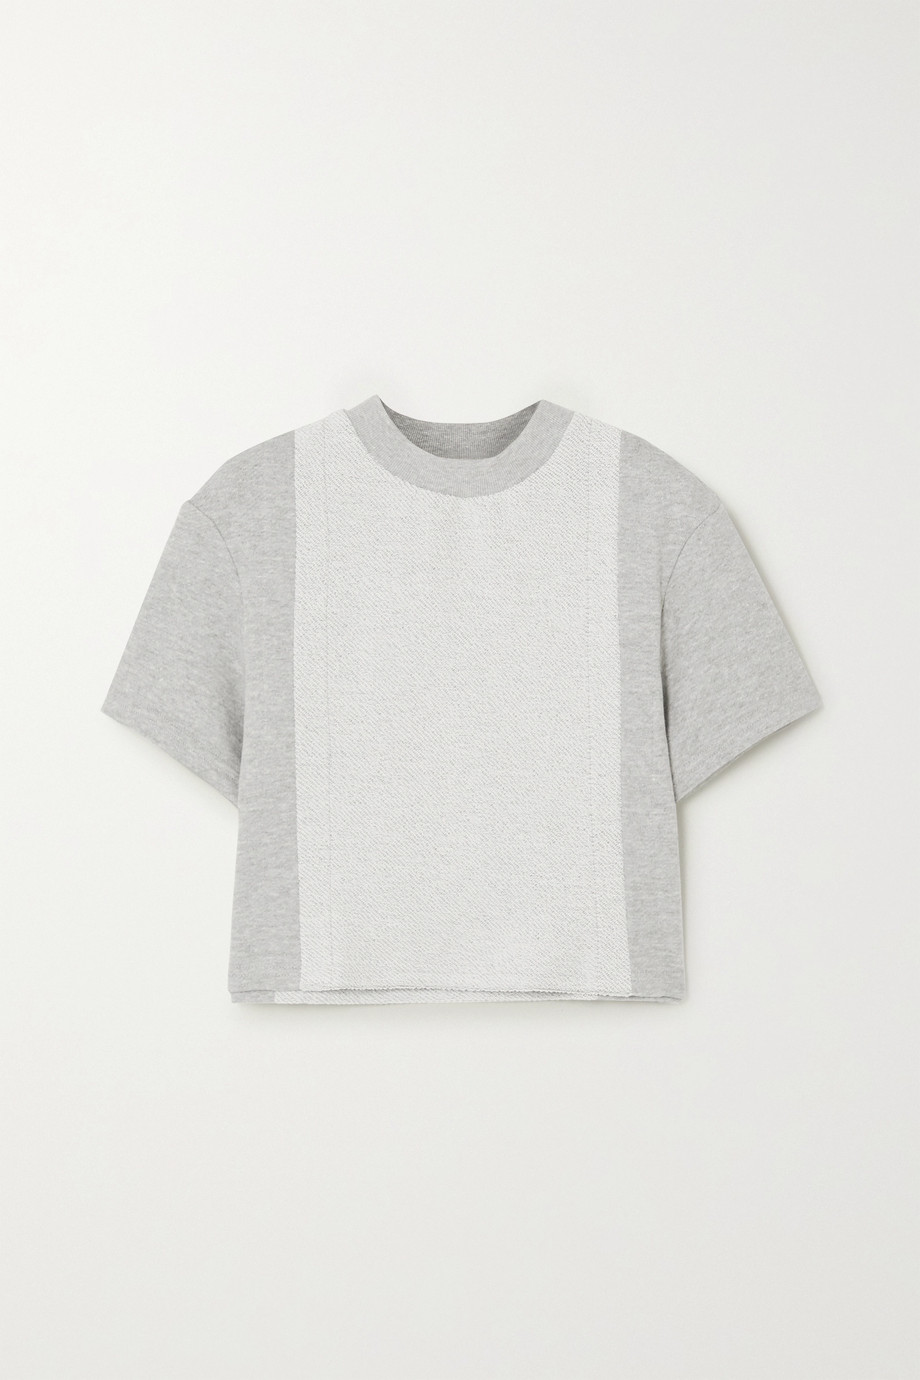 TWENTY Montréal Sunnyside cropped paneled mélange cotton-blend terry T-shirt